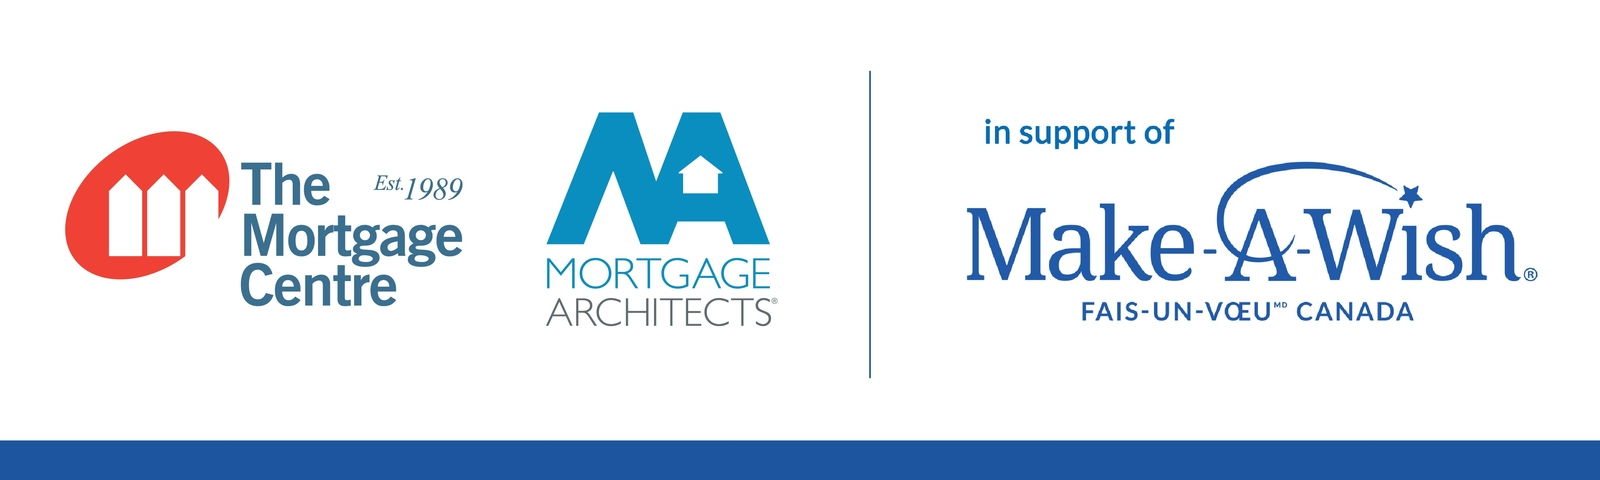 Mortgage Centre Canada and Mortgage Architects